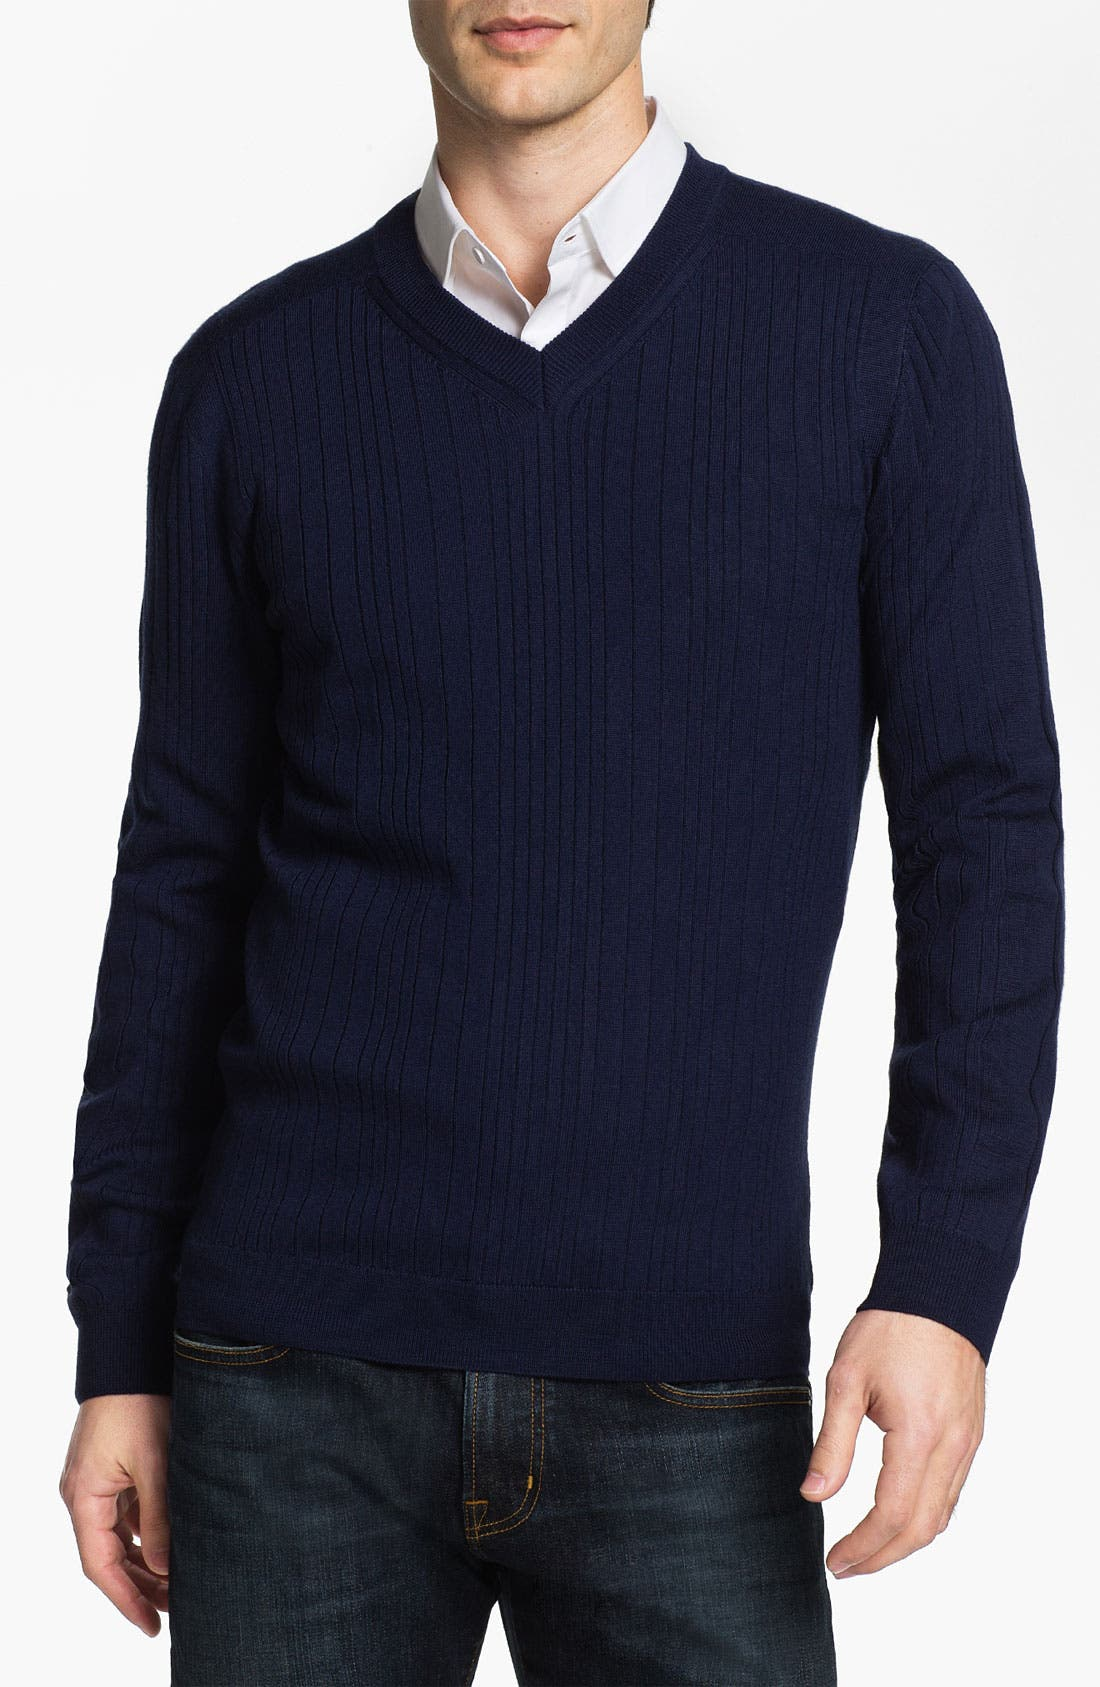 Main Image - HUGO 'Sagaro' V-Neck Wool Sweater